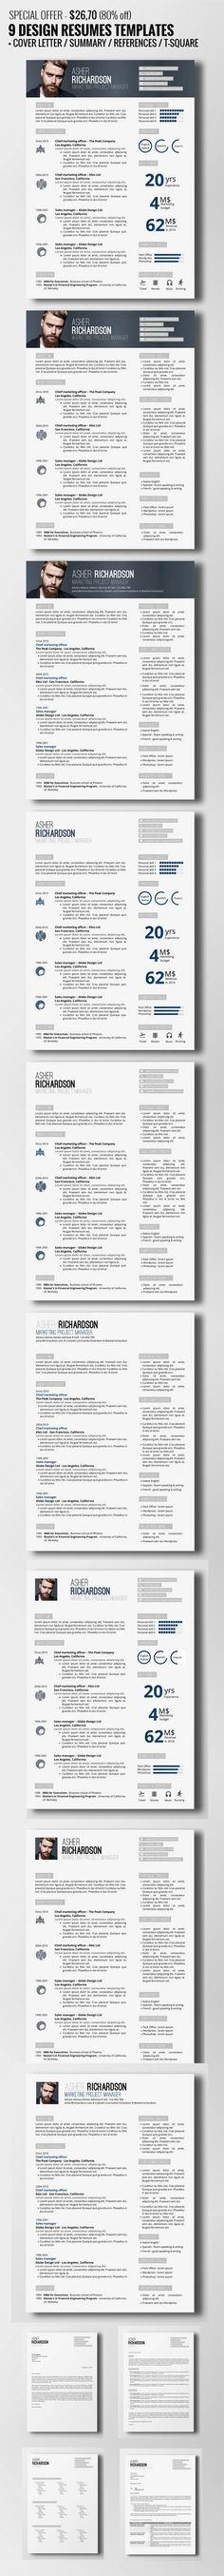 435 best Resume images on Pinterest Resume design, Design resume - resume action words